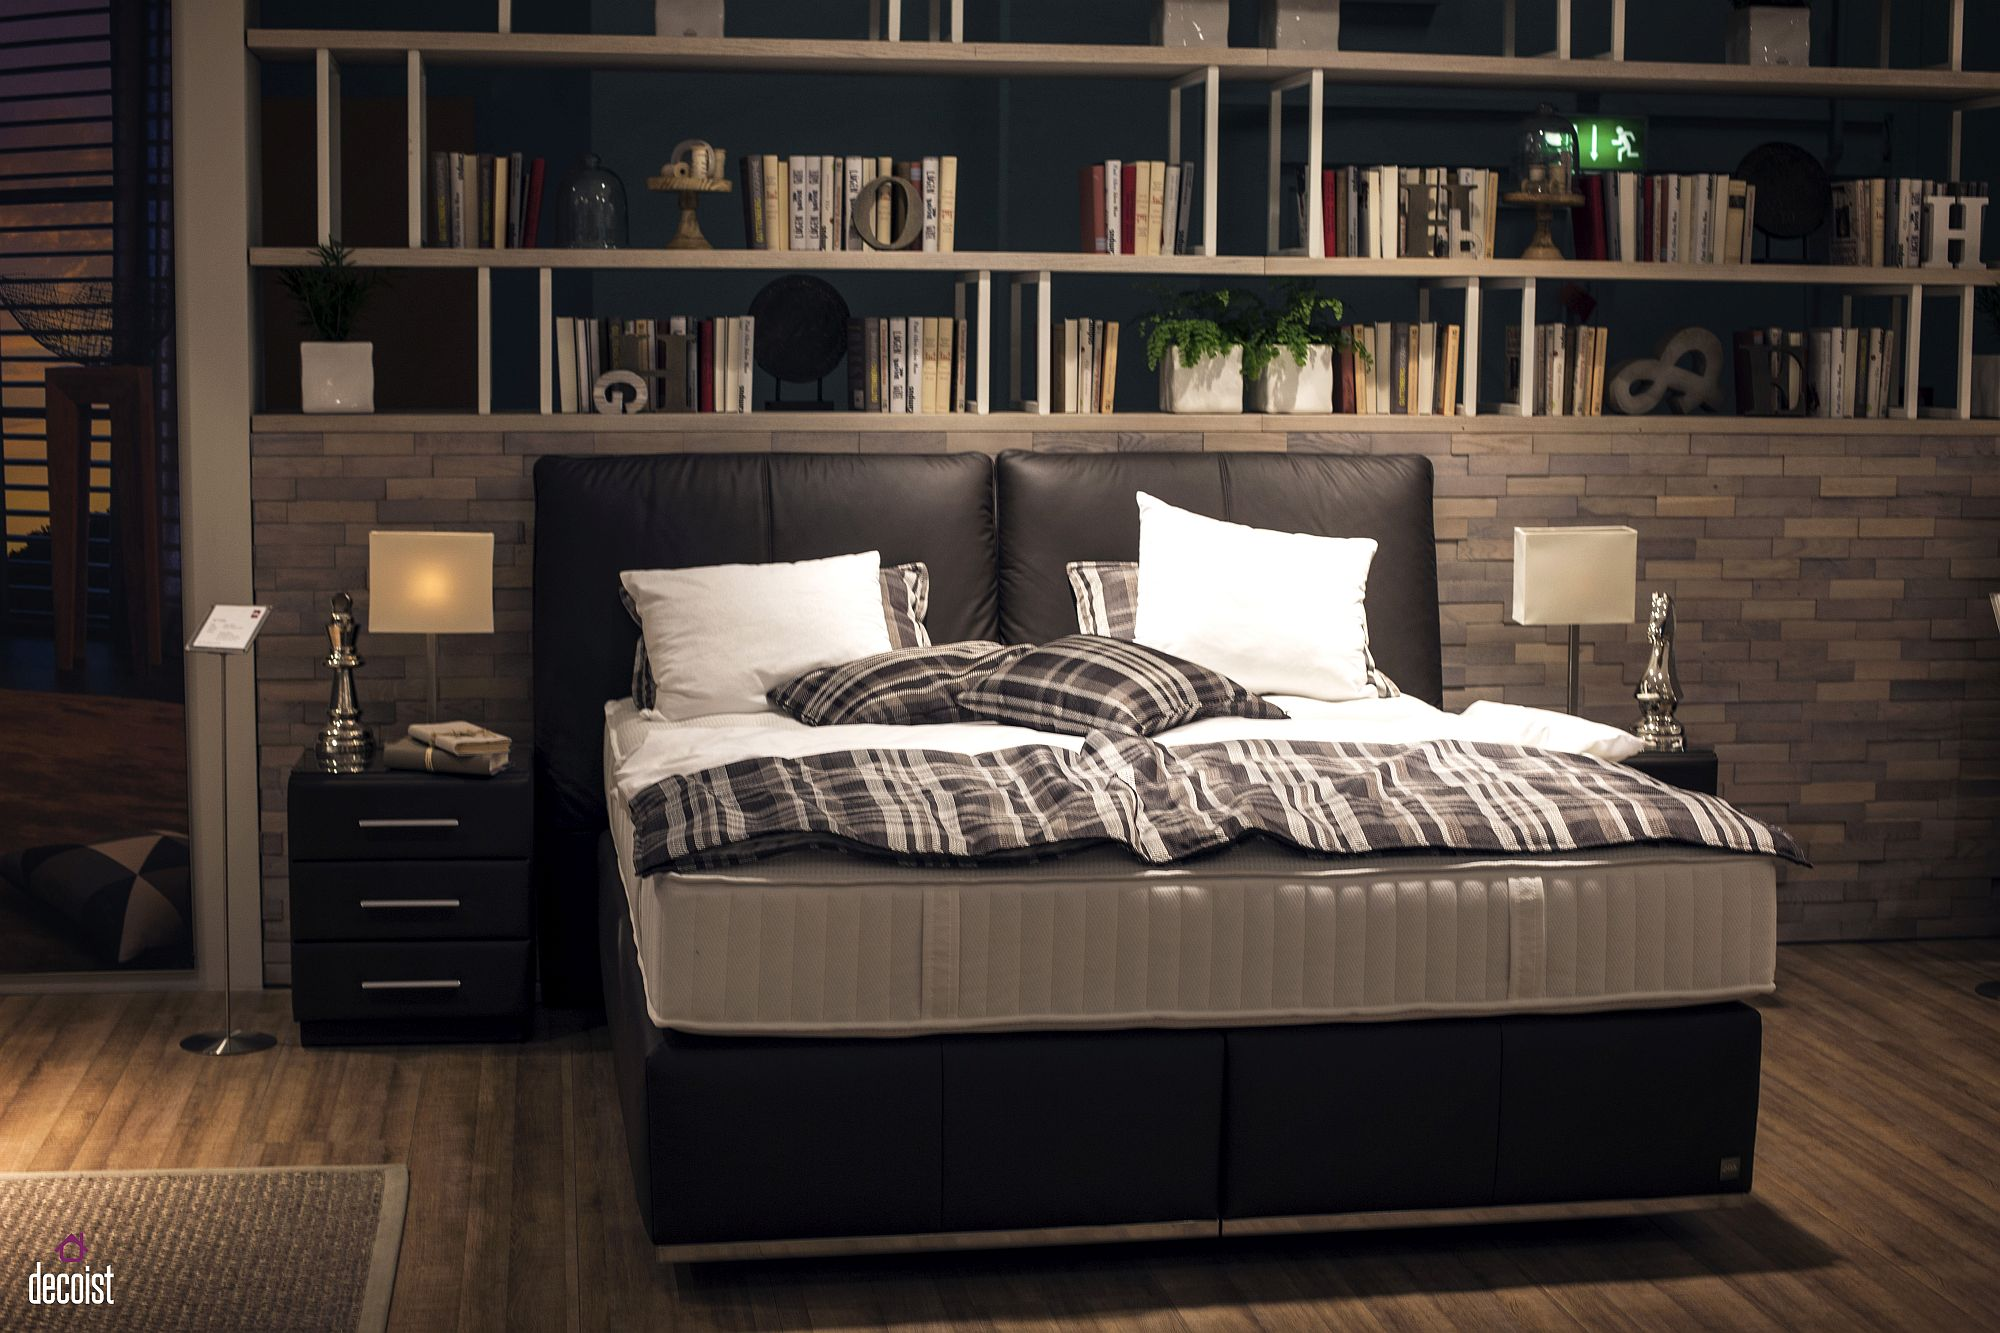 Classic nightstand brings symmetry and style to the contemporary bedroom